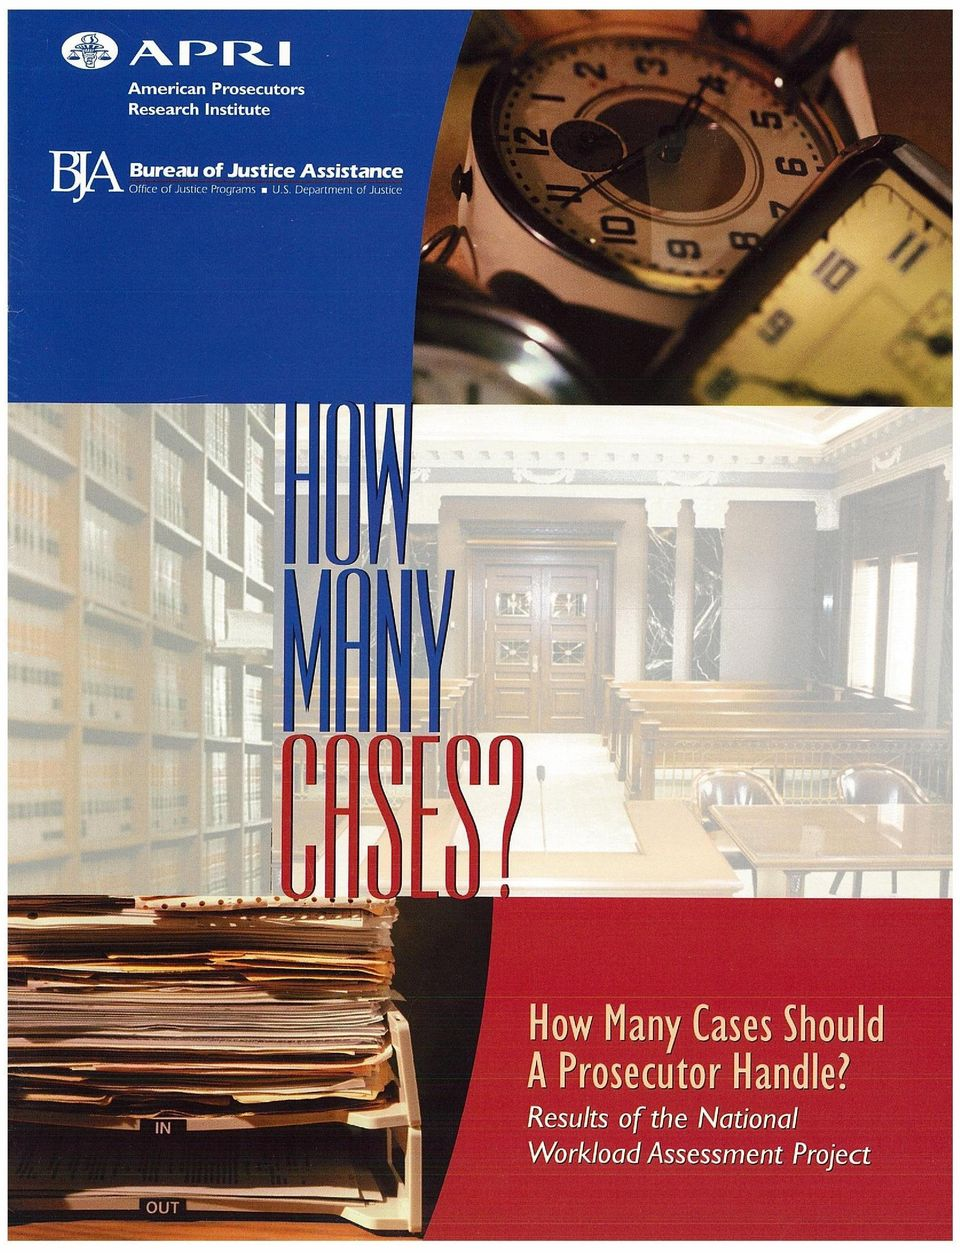 Department of Justice 1' How Many Cases Should A